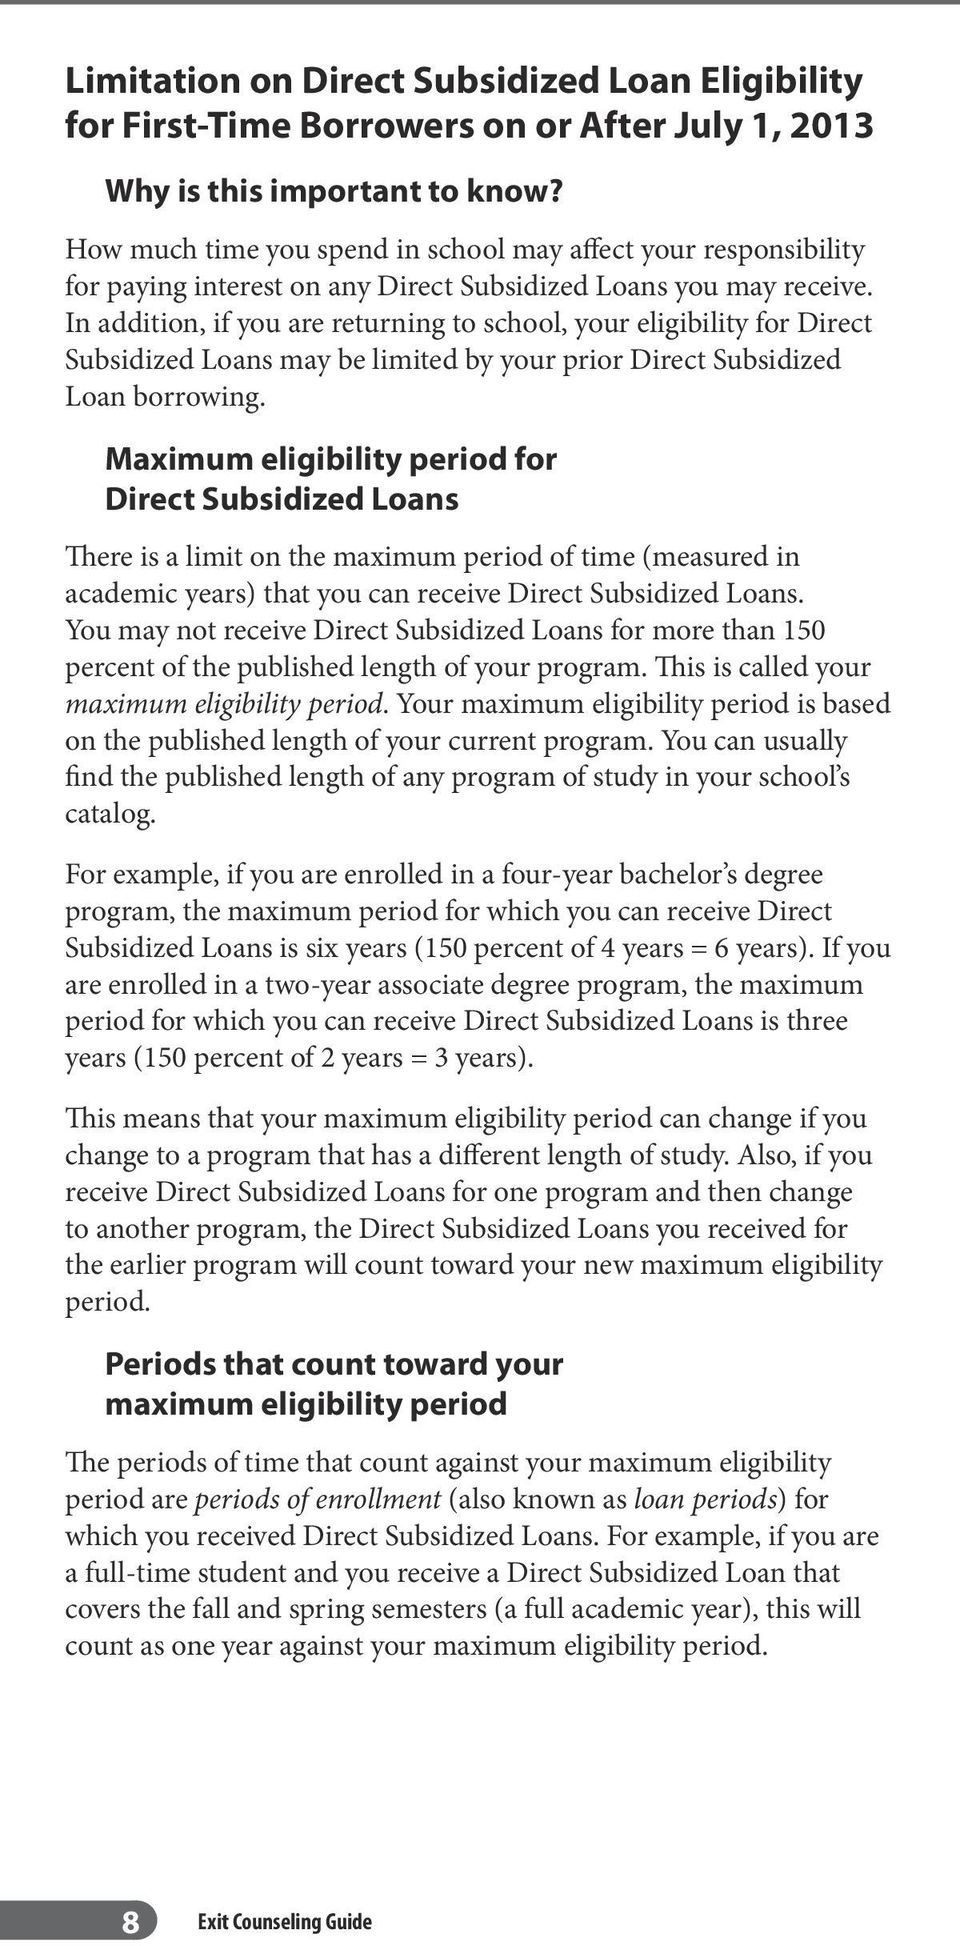 In addition, if you are returning to school, your eligibility for Direct Subsidized Loans may be limited by your prior Direct Subsidized Loan borrowing.